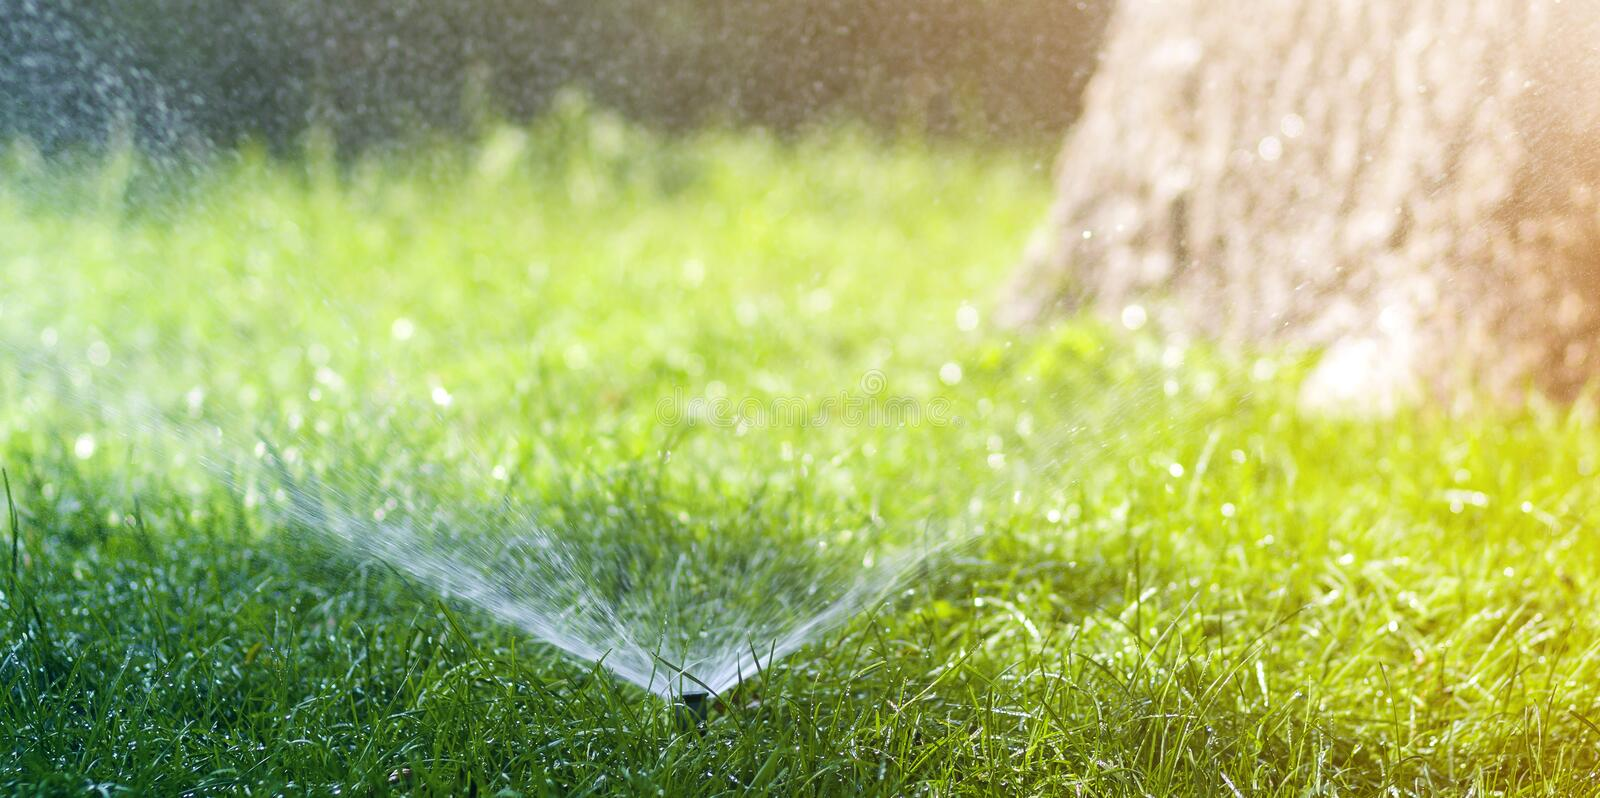 Lawn water sprinkler spraying water over lawn green fresh grass in garden or backyard on hot summer day. Automatic watering stock image